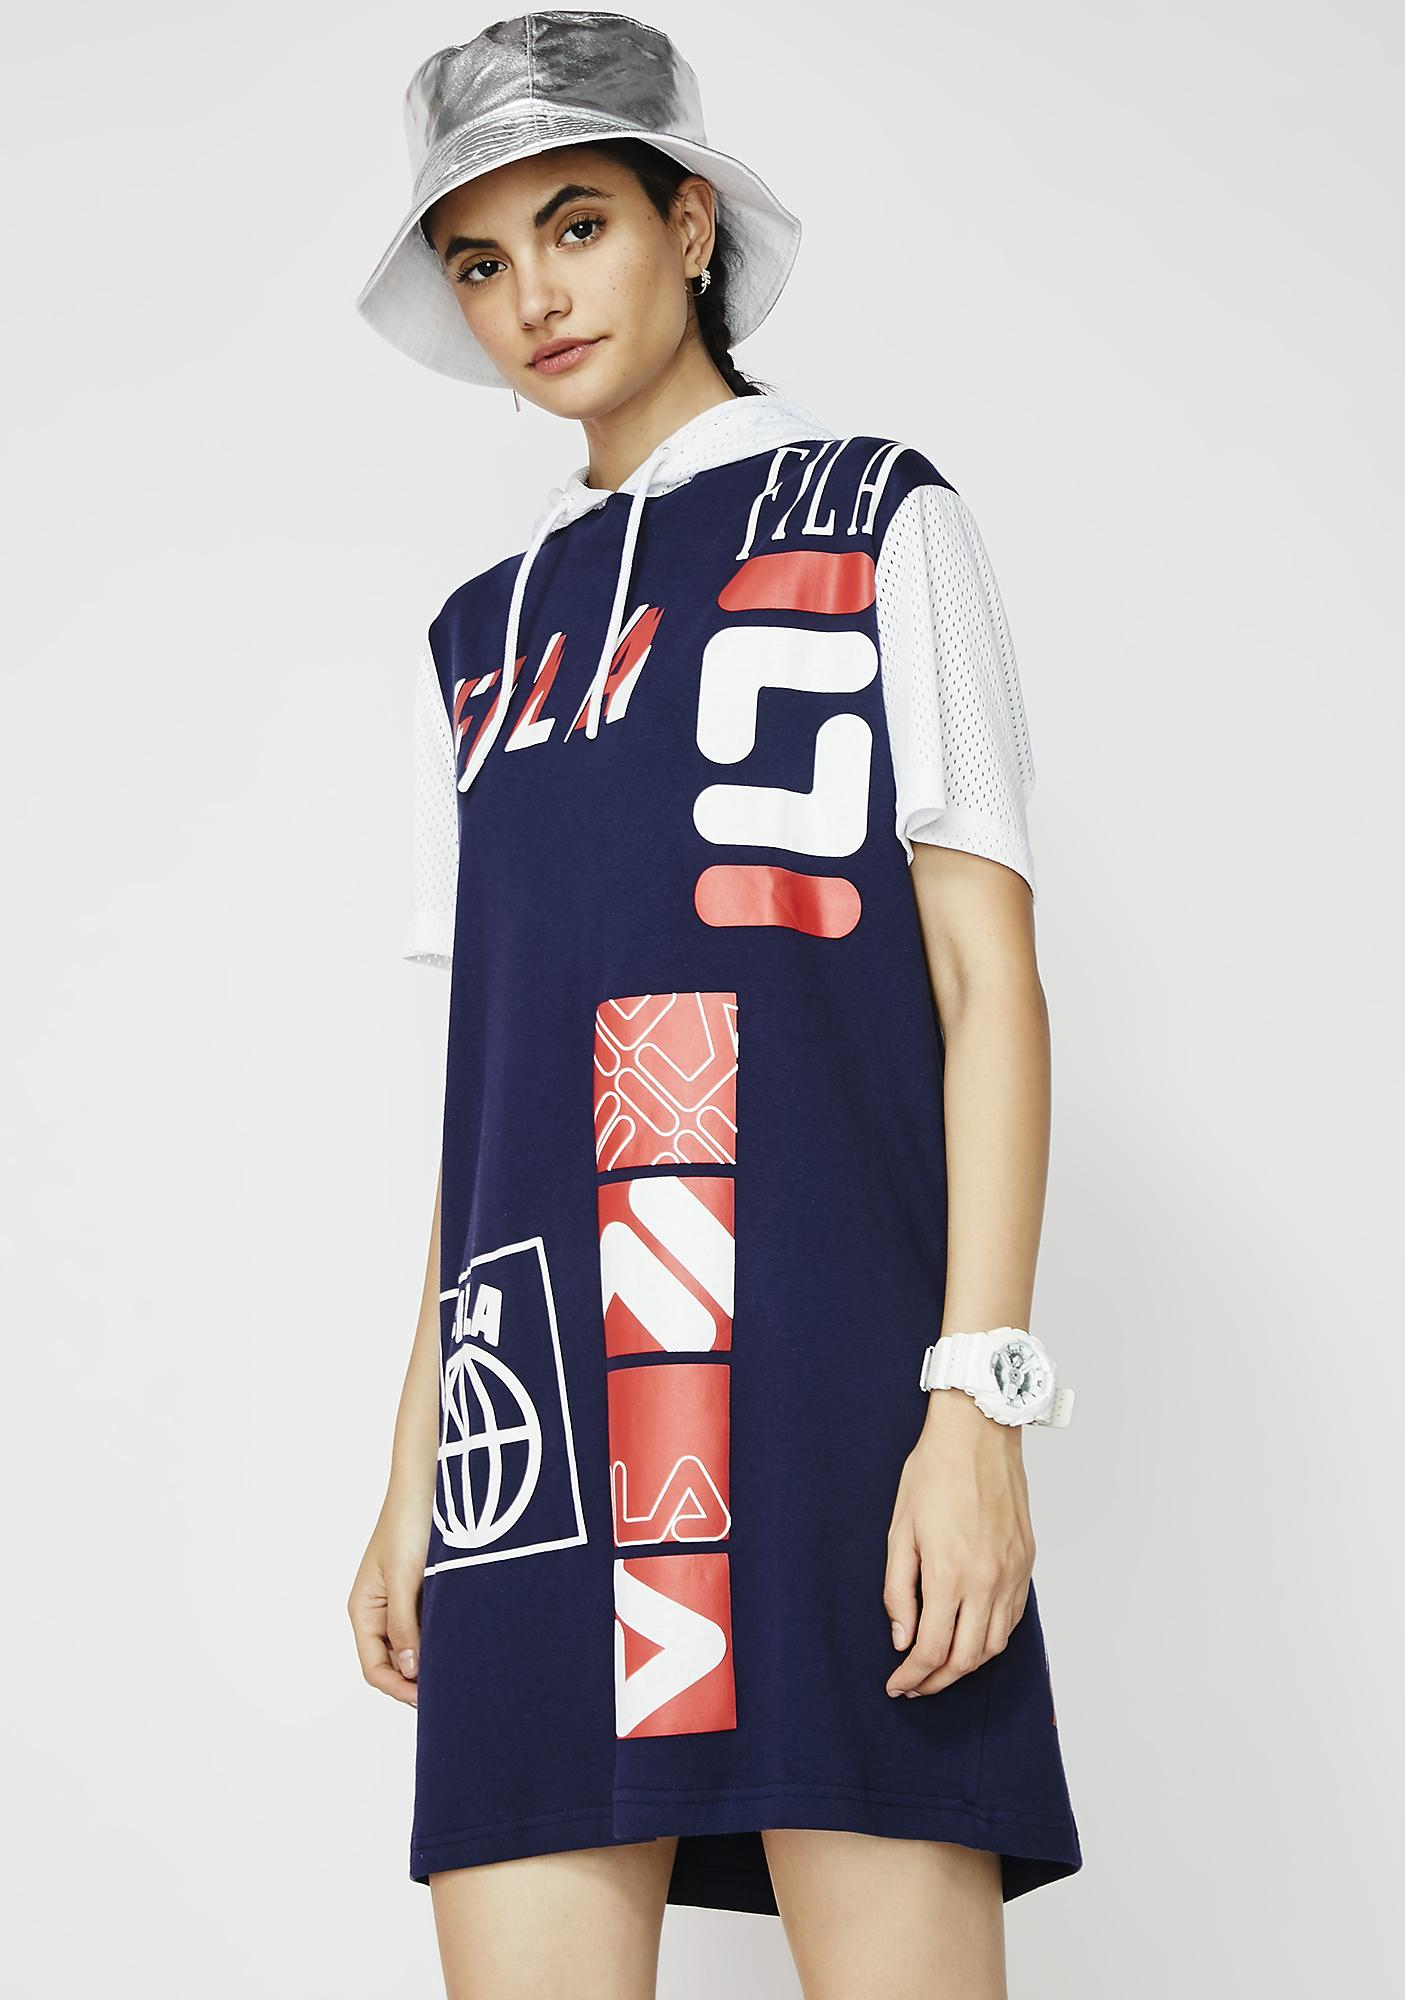 Fila Tia Hooded Dress